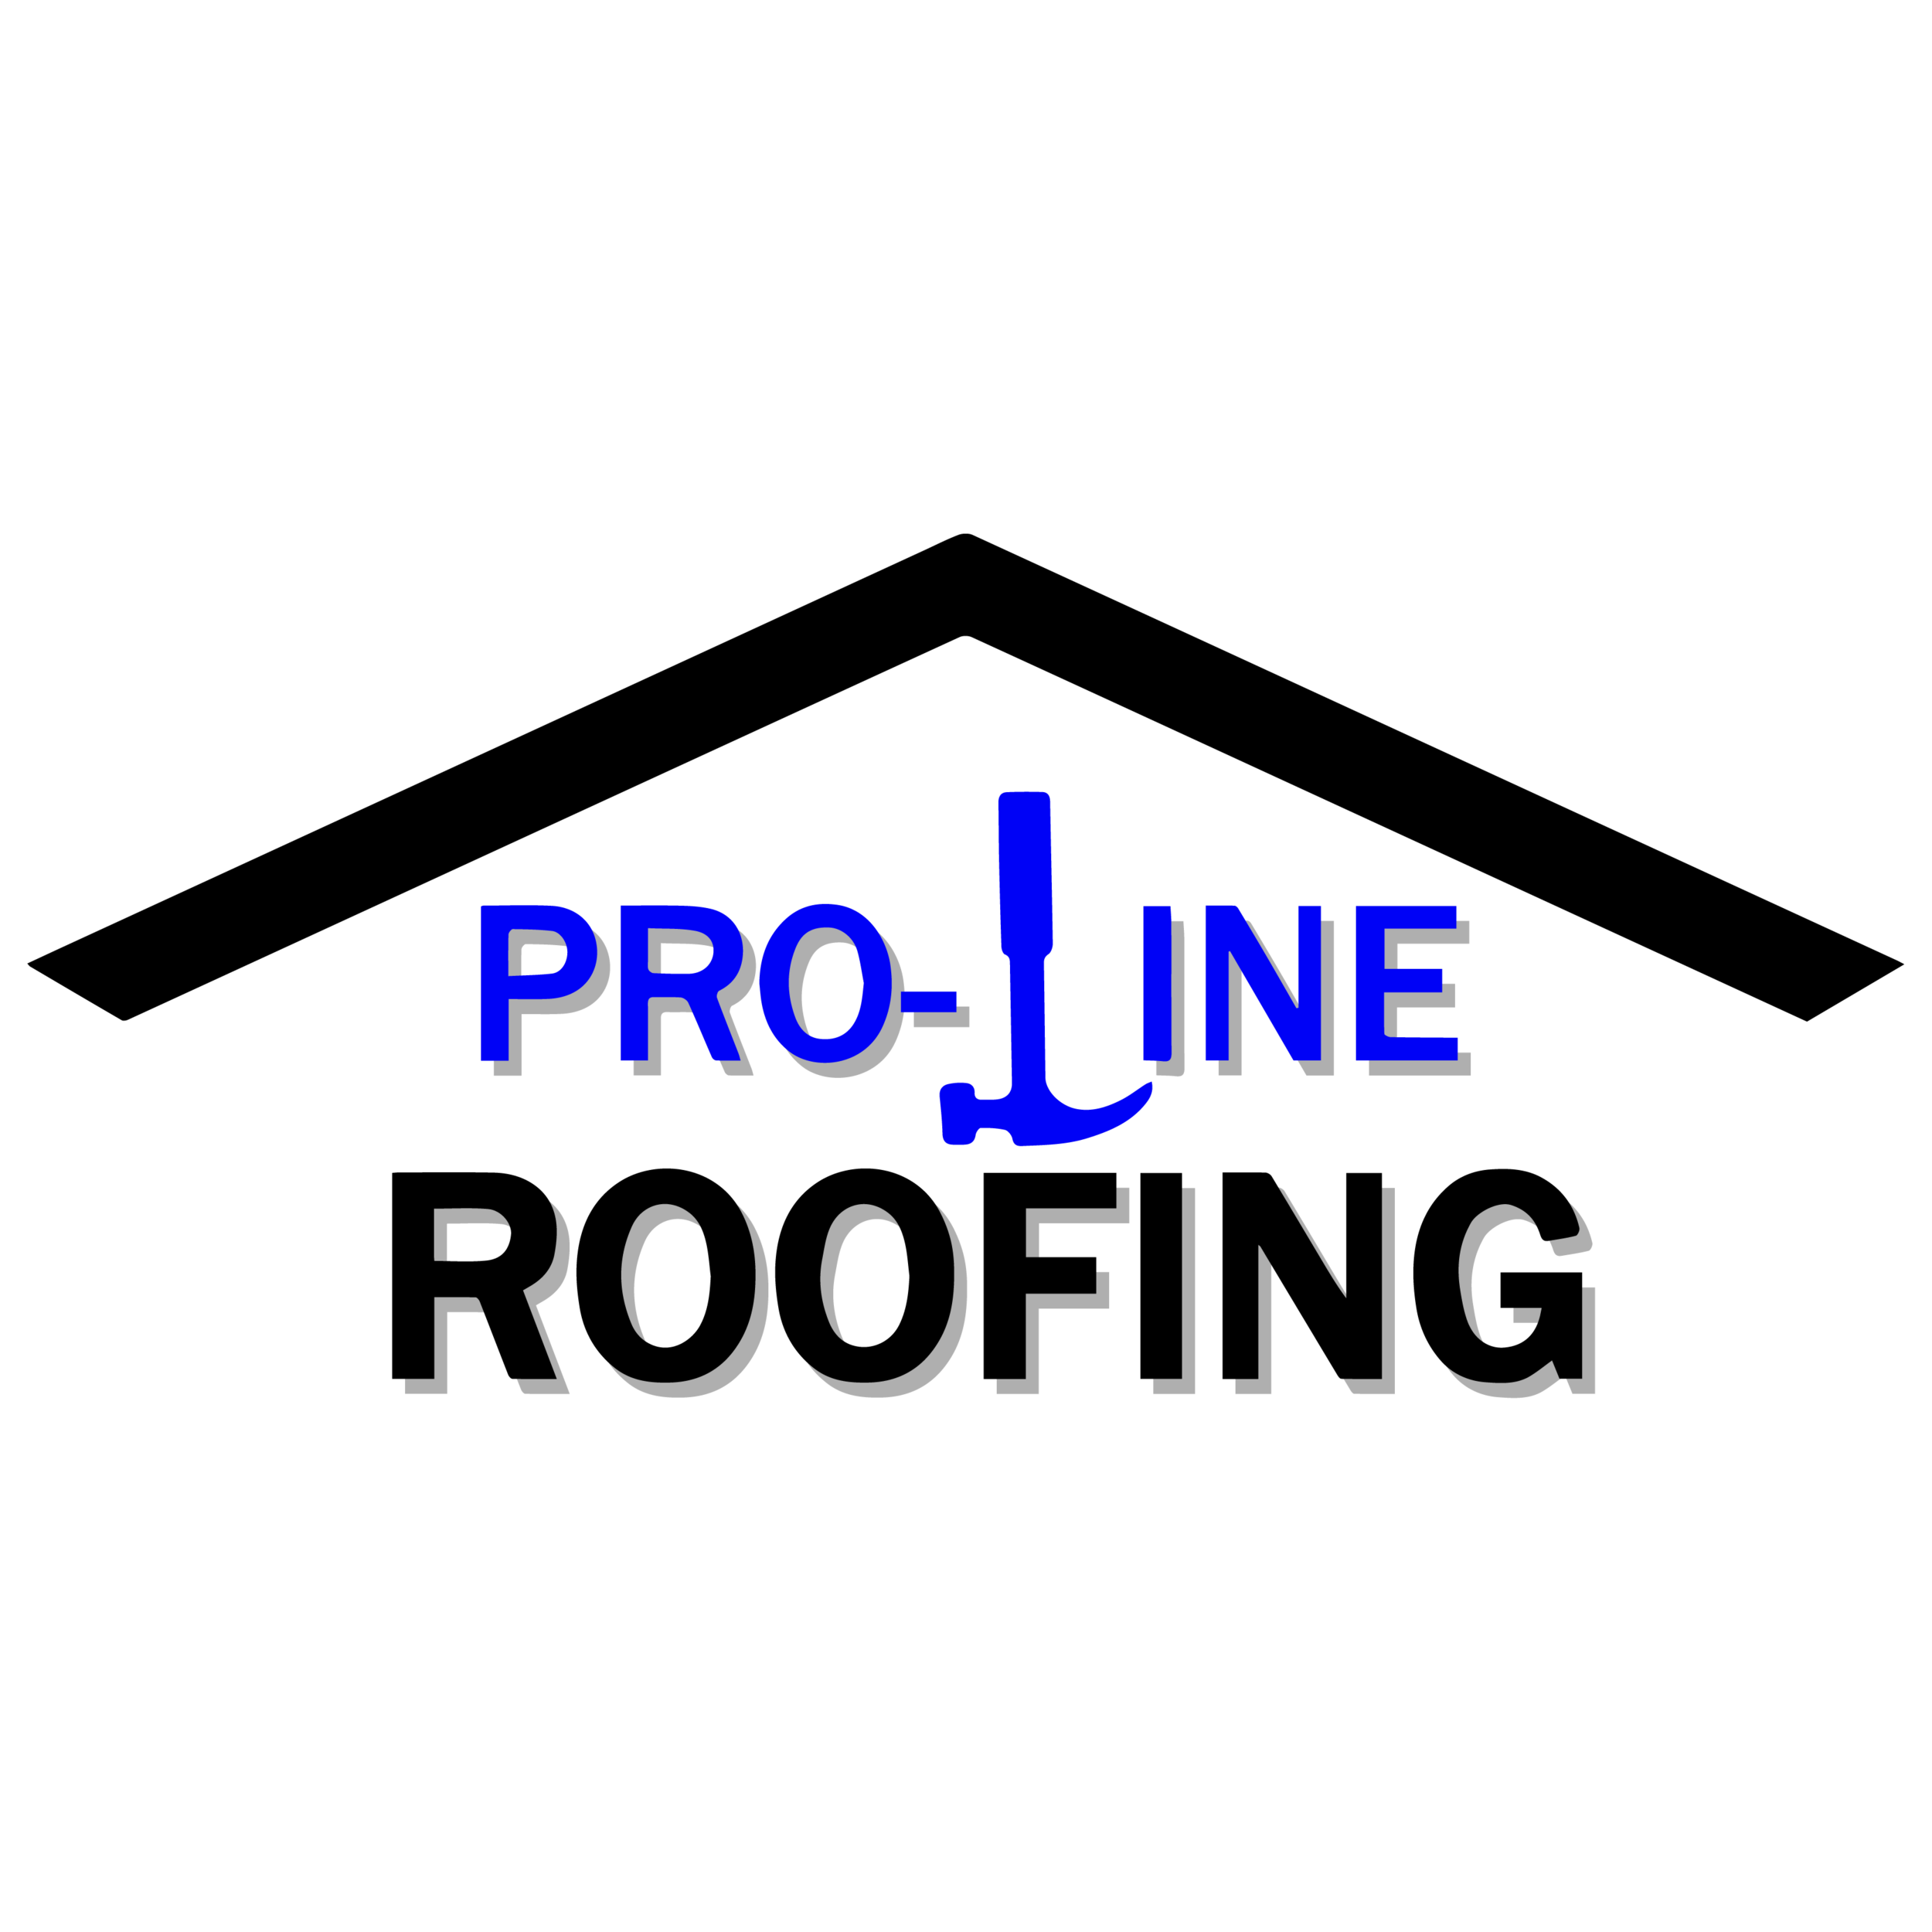 Pro-Line Roofing - Our roofing brand, also fully licensed, performs all of our roofing, inspections, maintenance, repairs and installations.If you need a new roof, a repair, or just a tune-up, we are here to serve you.